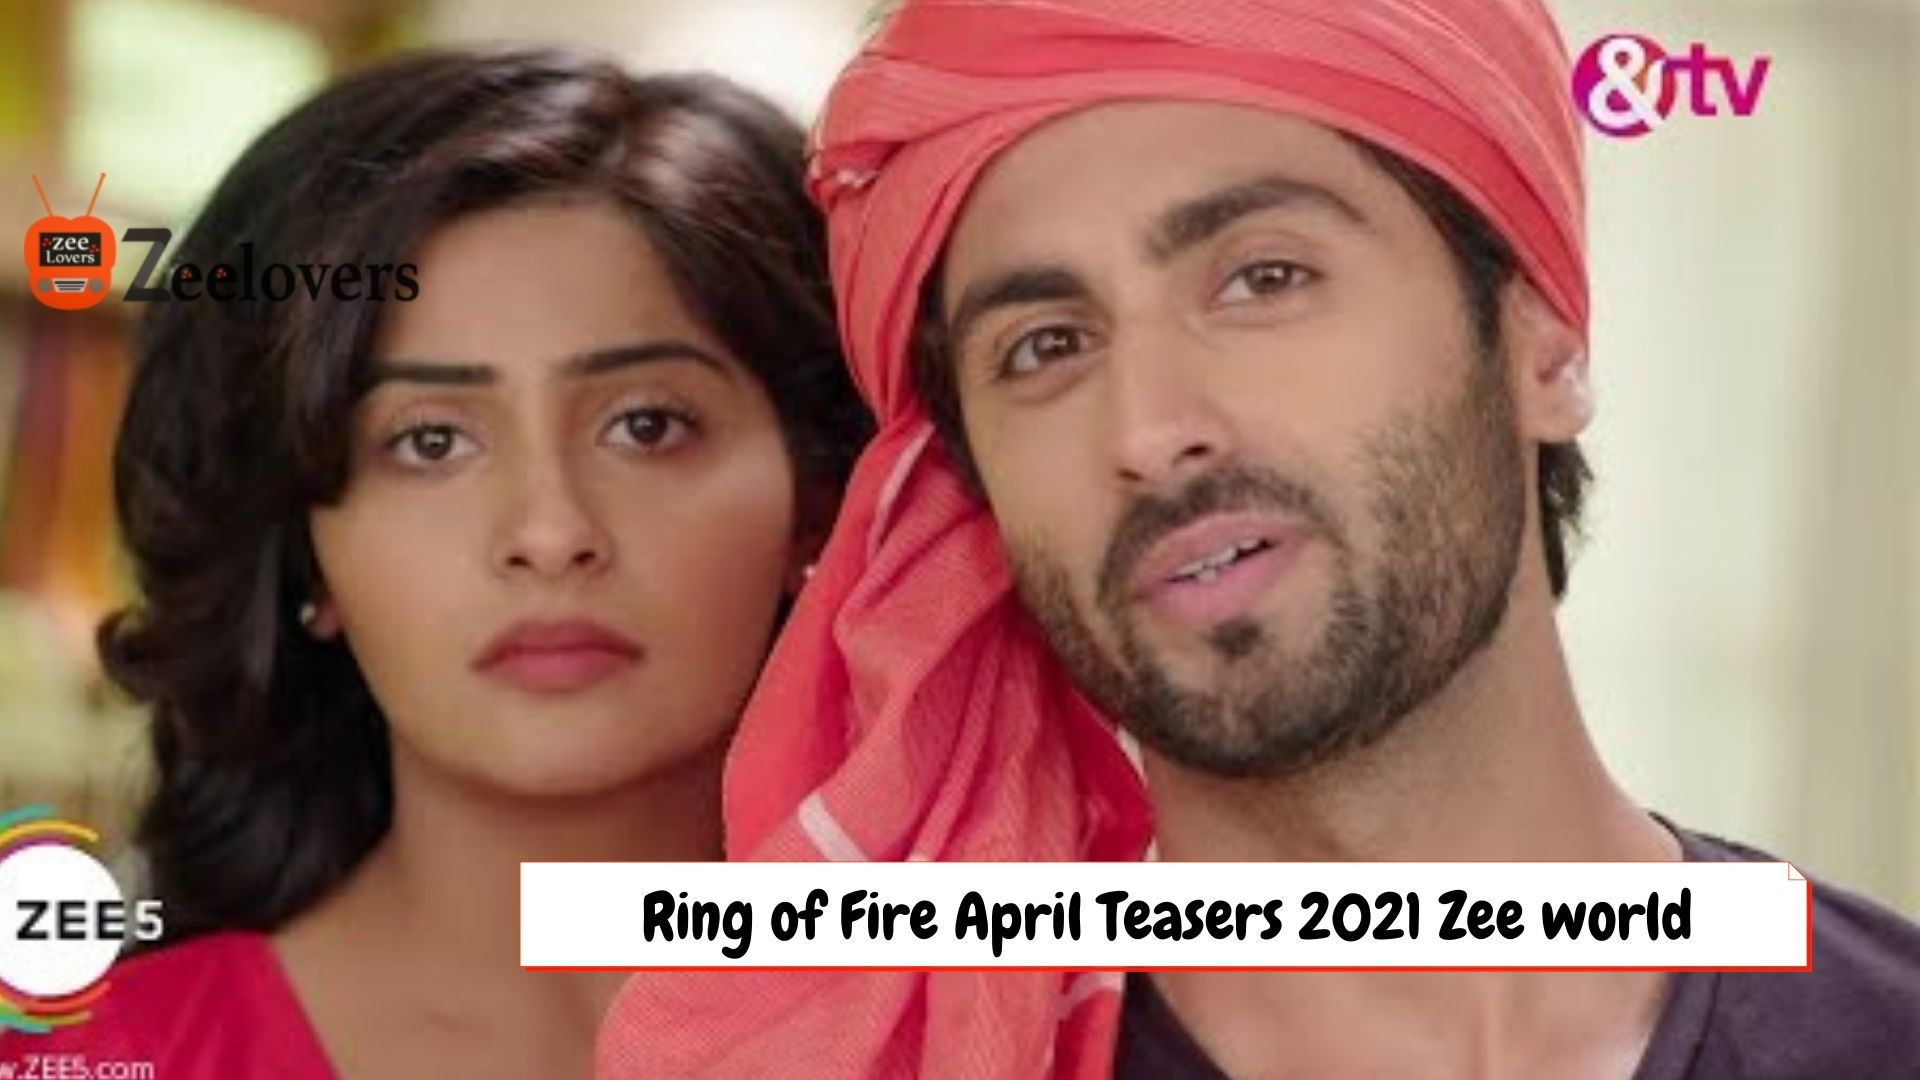 Ring of Fire April Teasers 2021 Zee world